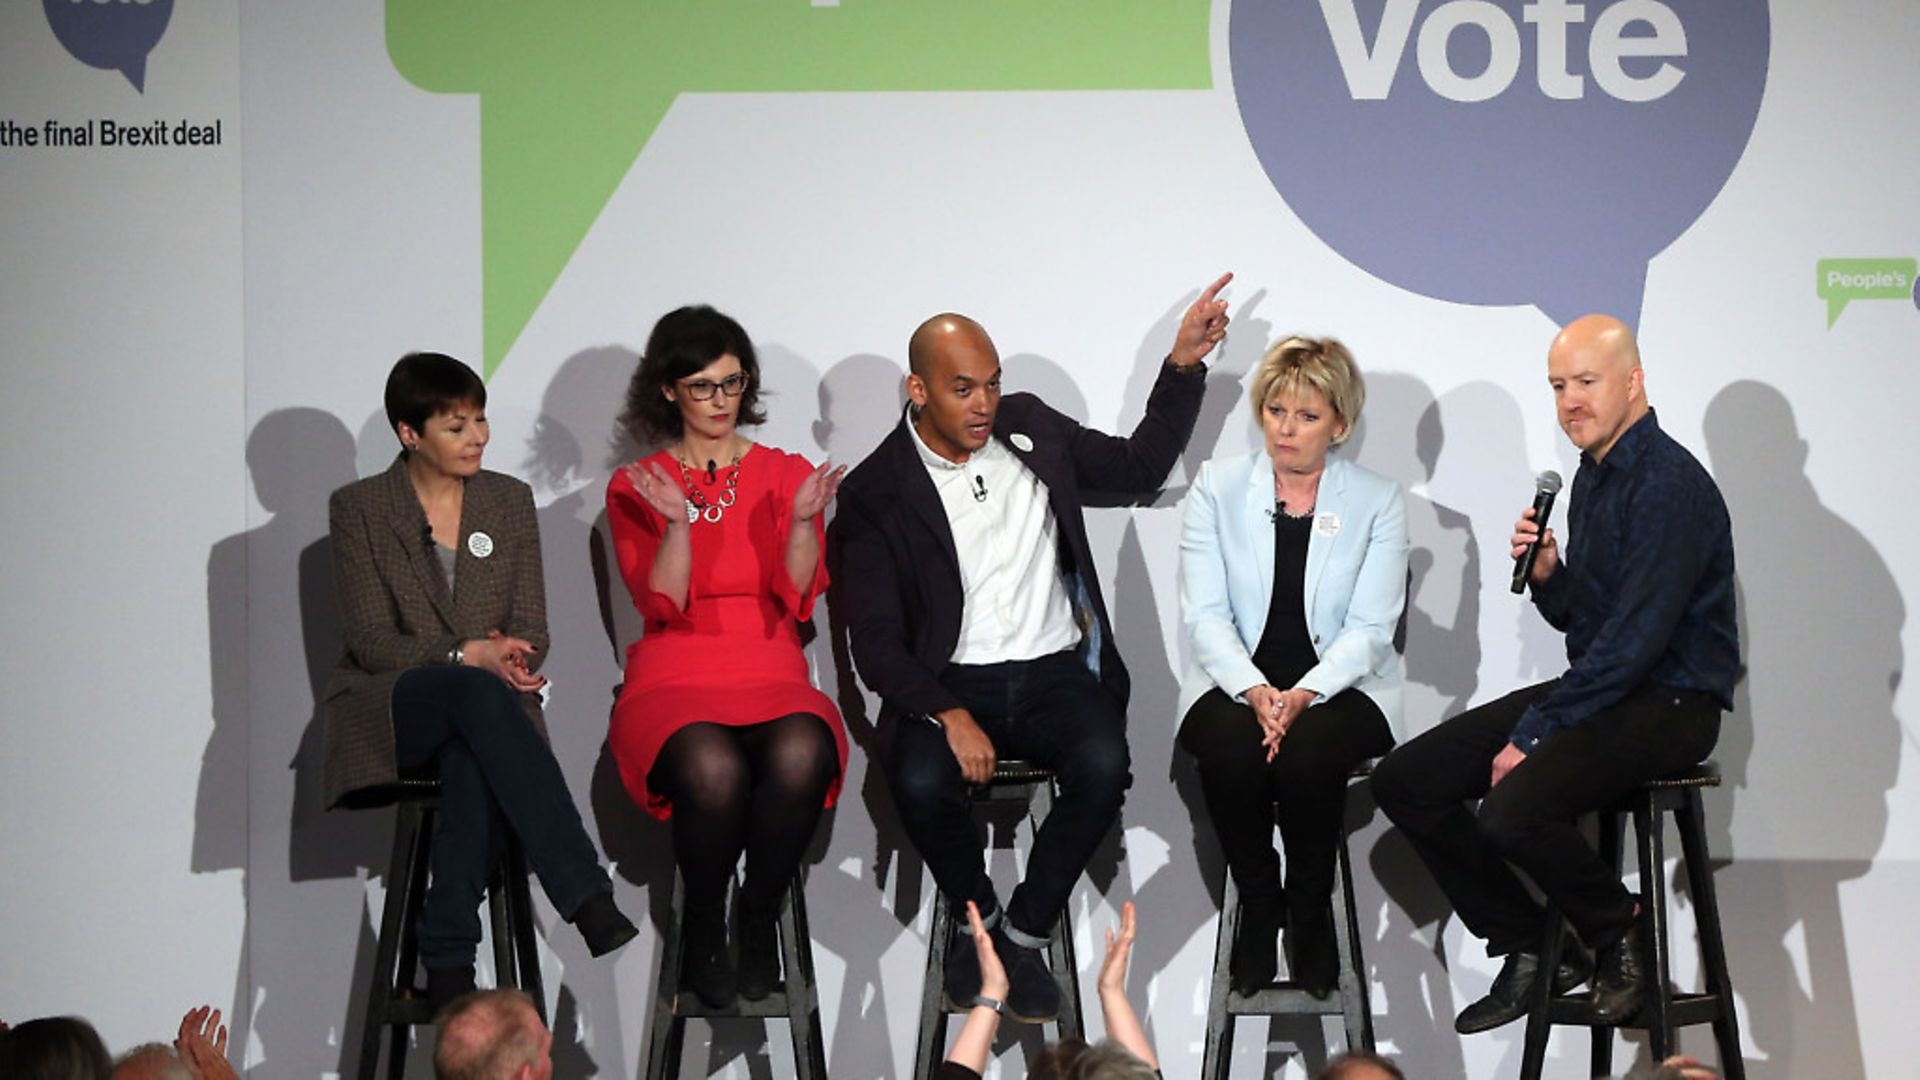 Politicians Caroline Lucas, left, Layla Moran, Chuka Umunna, and Anna Soubry are joined onstage by comedian Andy Parsons, right, during the People's Vote campaign launch on Brexit at the Electric Ballroom in Camden Town. Photo: Jonathan Brady/PA Wire - Credit: PA